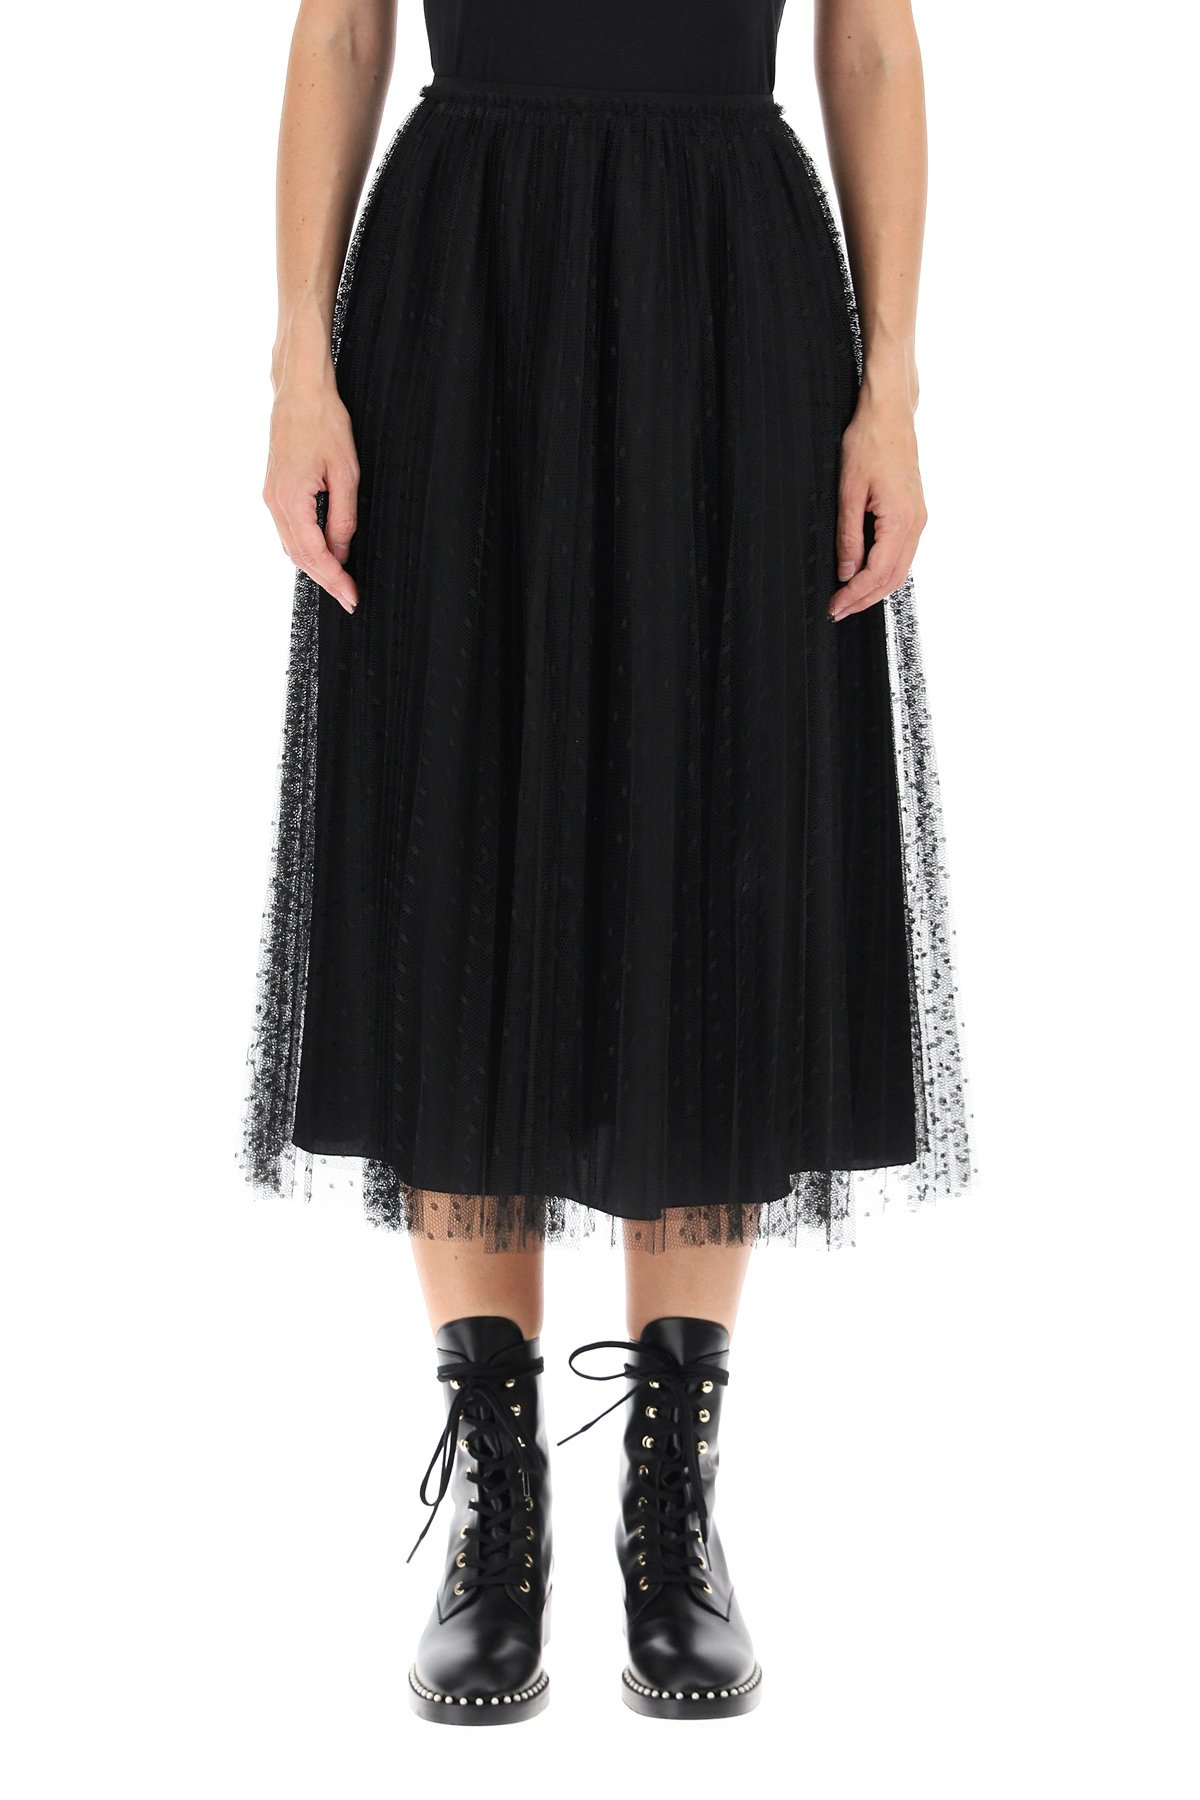 Red valentino gonna plissé in tulle point d'esprit